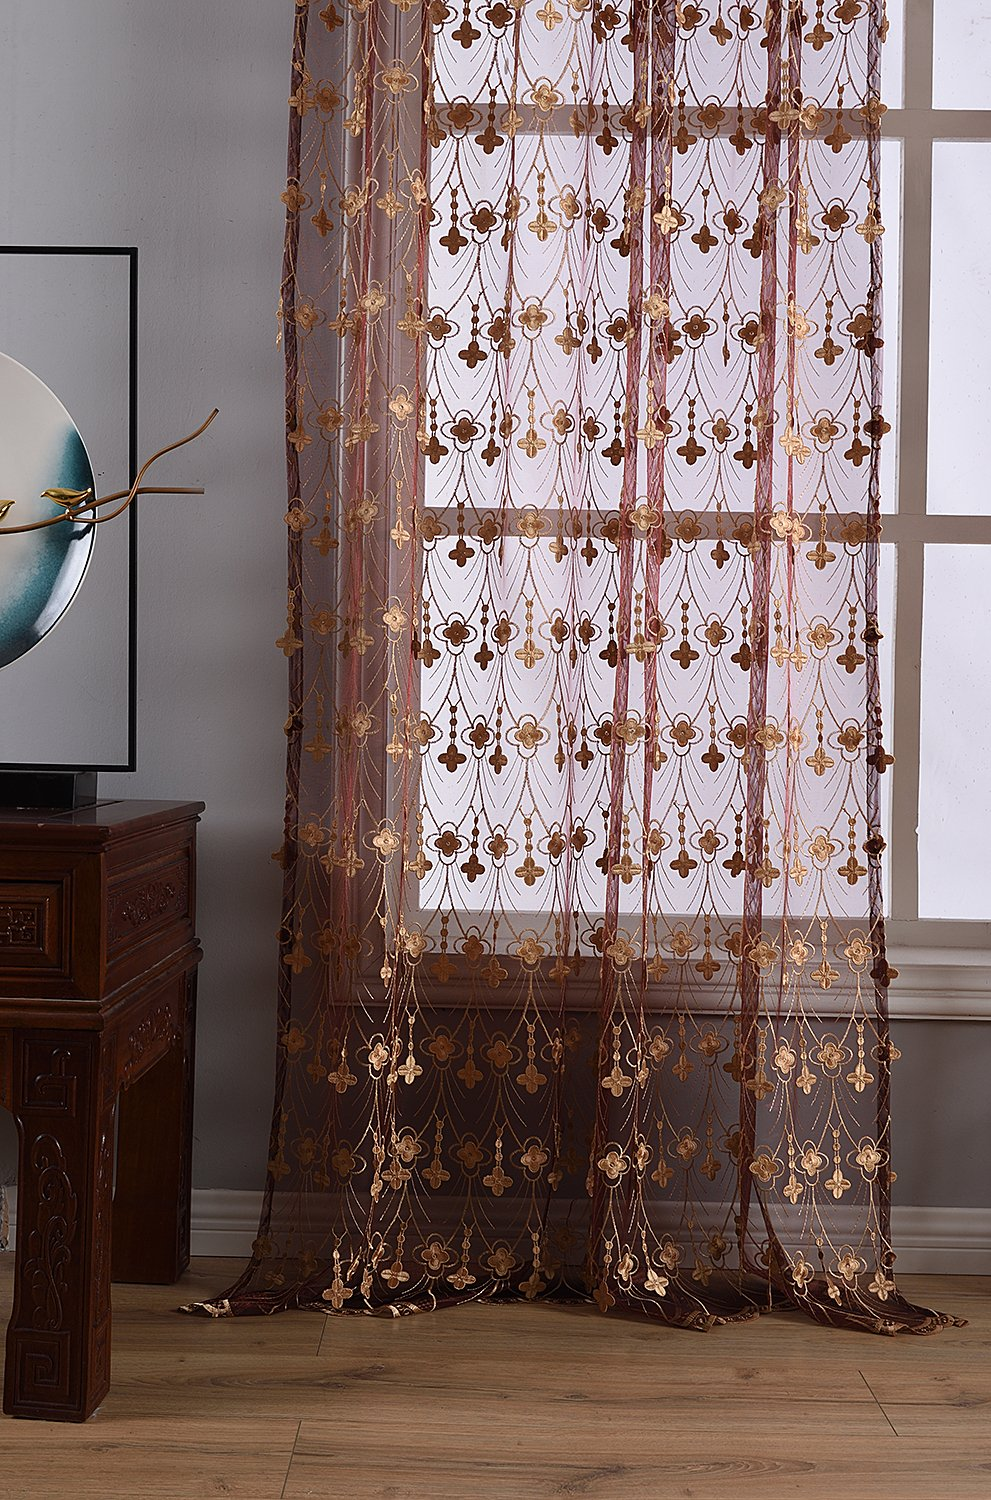 Aside Bside 4 Petals Floral Embroidered Sheer Curtains with Draping Embroidery Decorations Rod Pocket Top Brilliant Design (1 Panel, W 52 x L 104 inch, Red 6) -1281638521048506C1PGC by Aside Bside (Image #7)